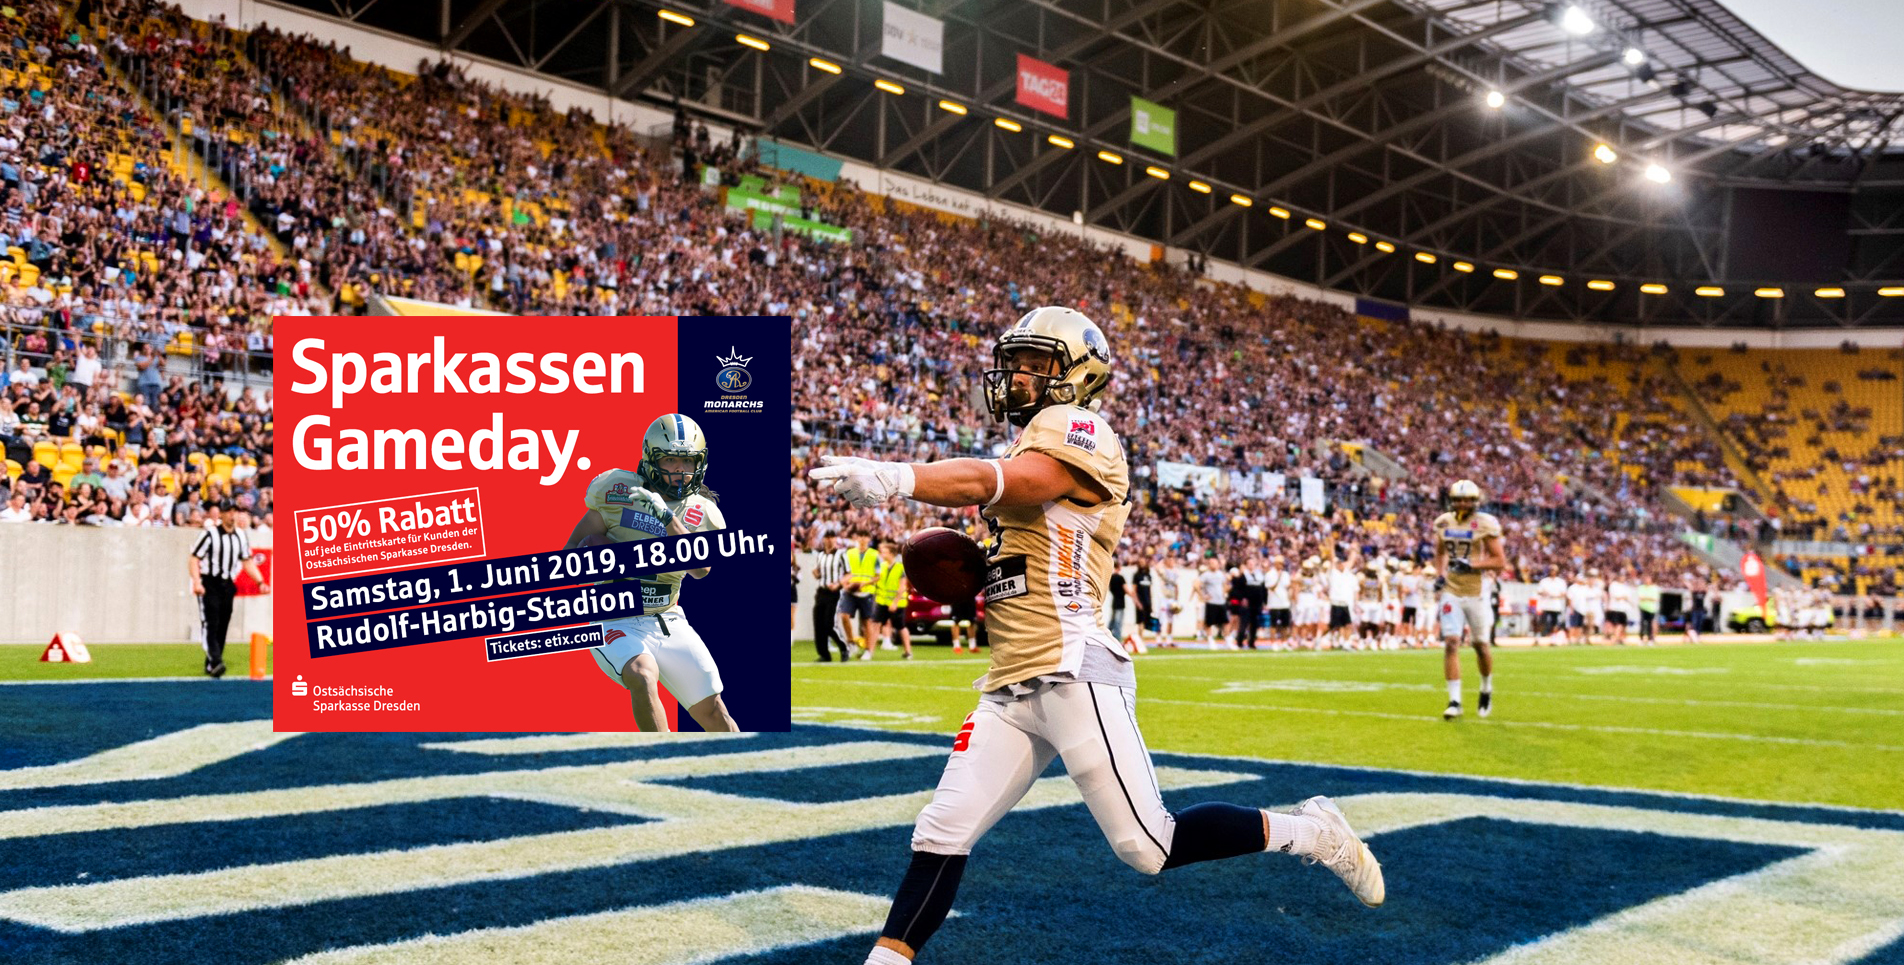 Sparkassen Gameday